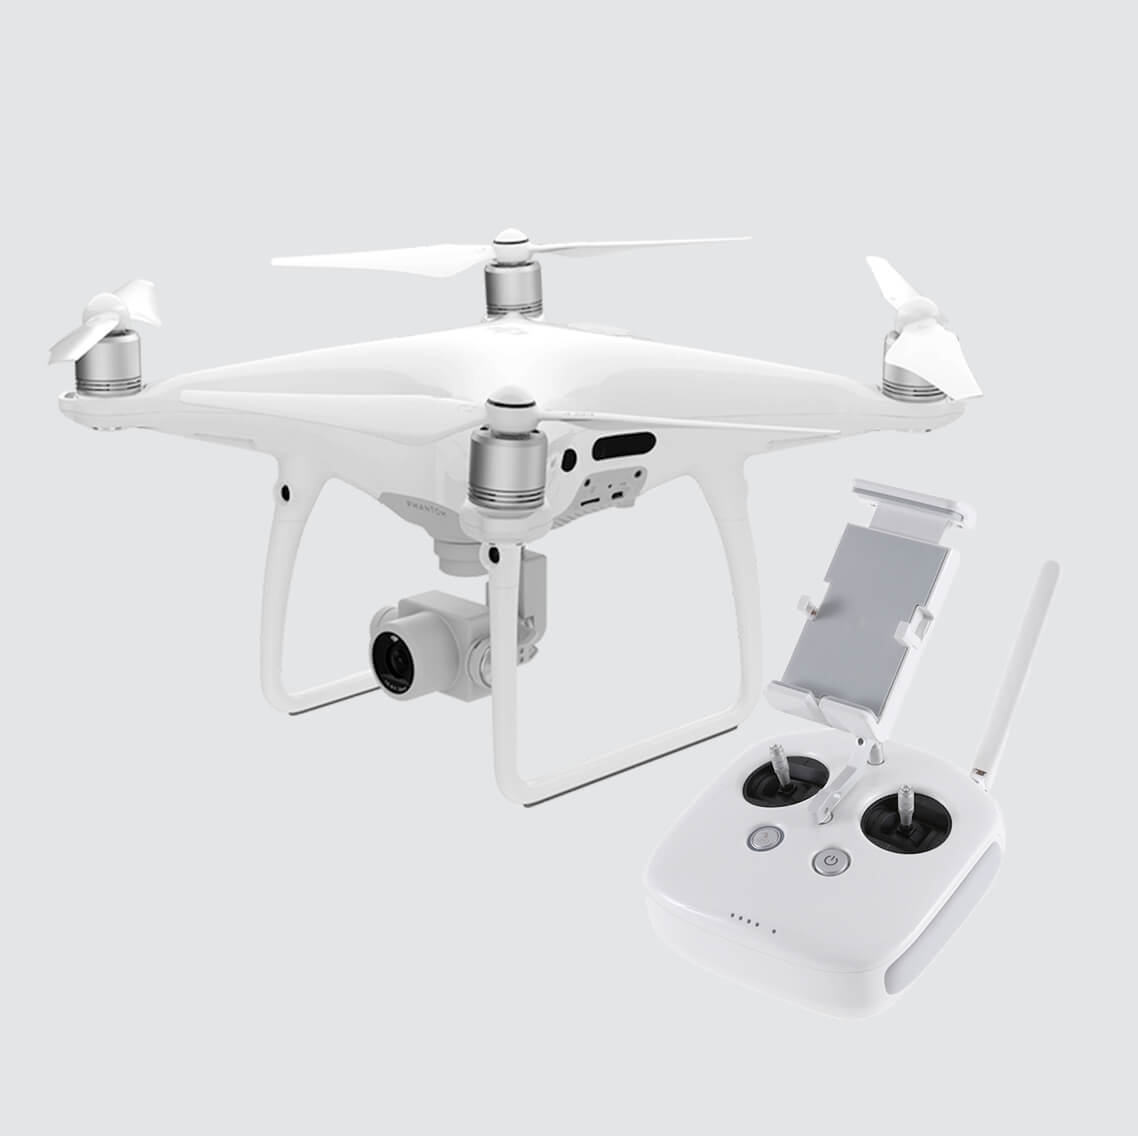 DJI Phantom 4 PRO V2.0 Quadcopter Drone 20MP 4K Camera ...